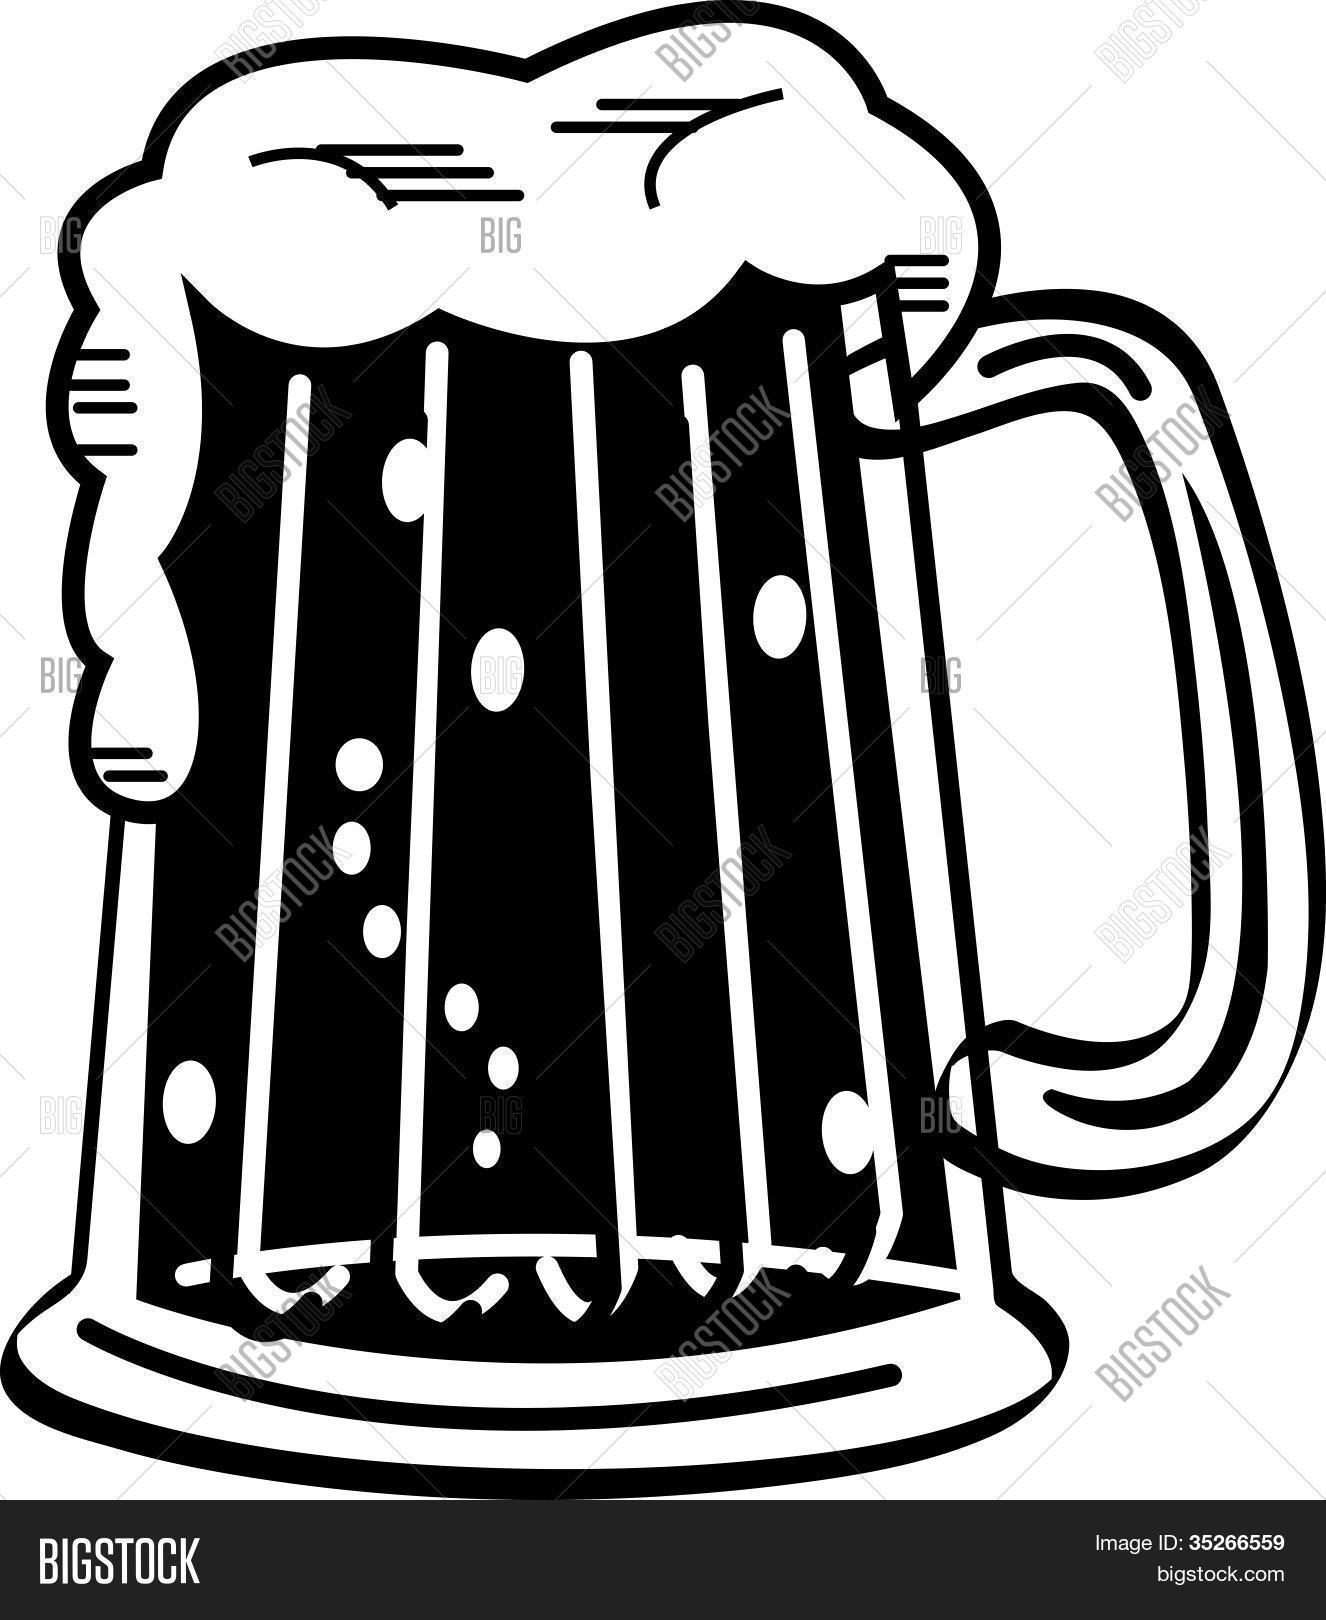 Beer clipart black and white picture black and white library Beer Clip Art Black And White | Clipart Panda - Free Clipart Images picture black and white library